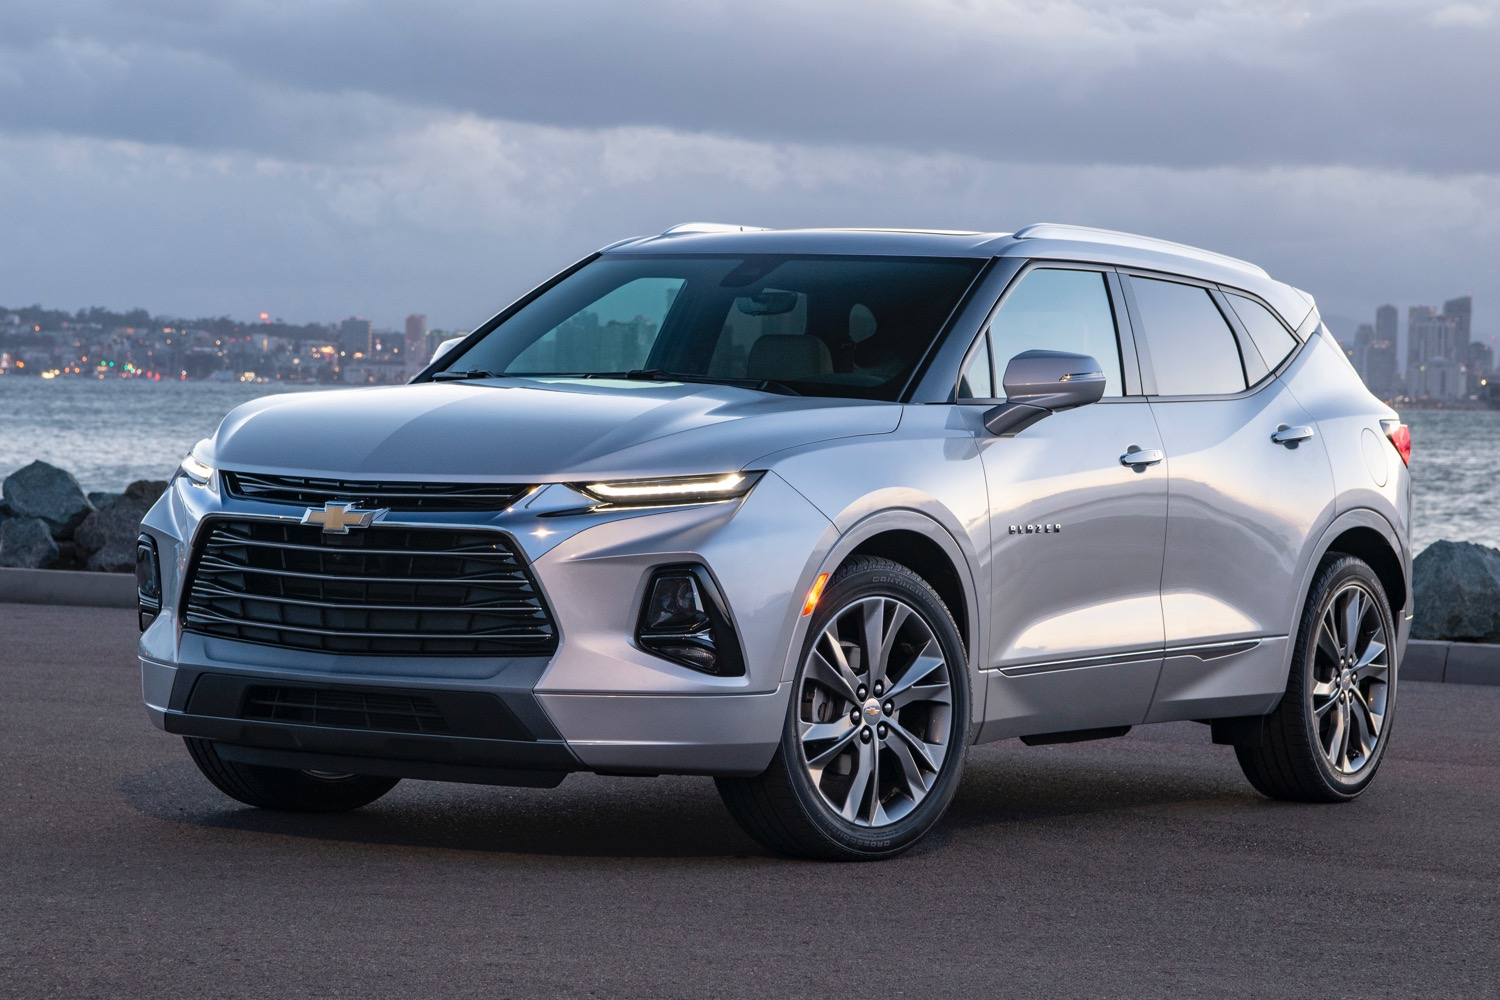 New Spy Pictures Show 2020 Chevy Equinox Refresh   Gm Authority Does 2021 Chevy Equinox Have 3Rd Row Seating